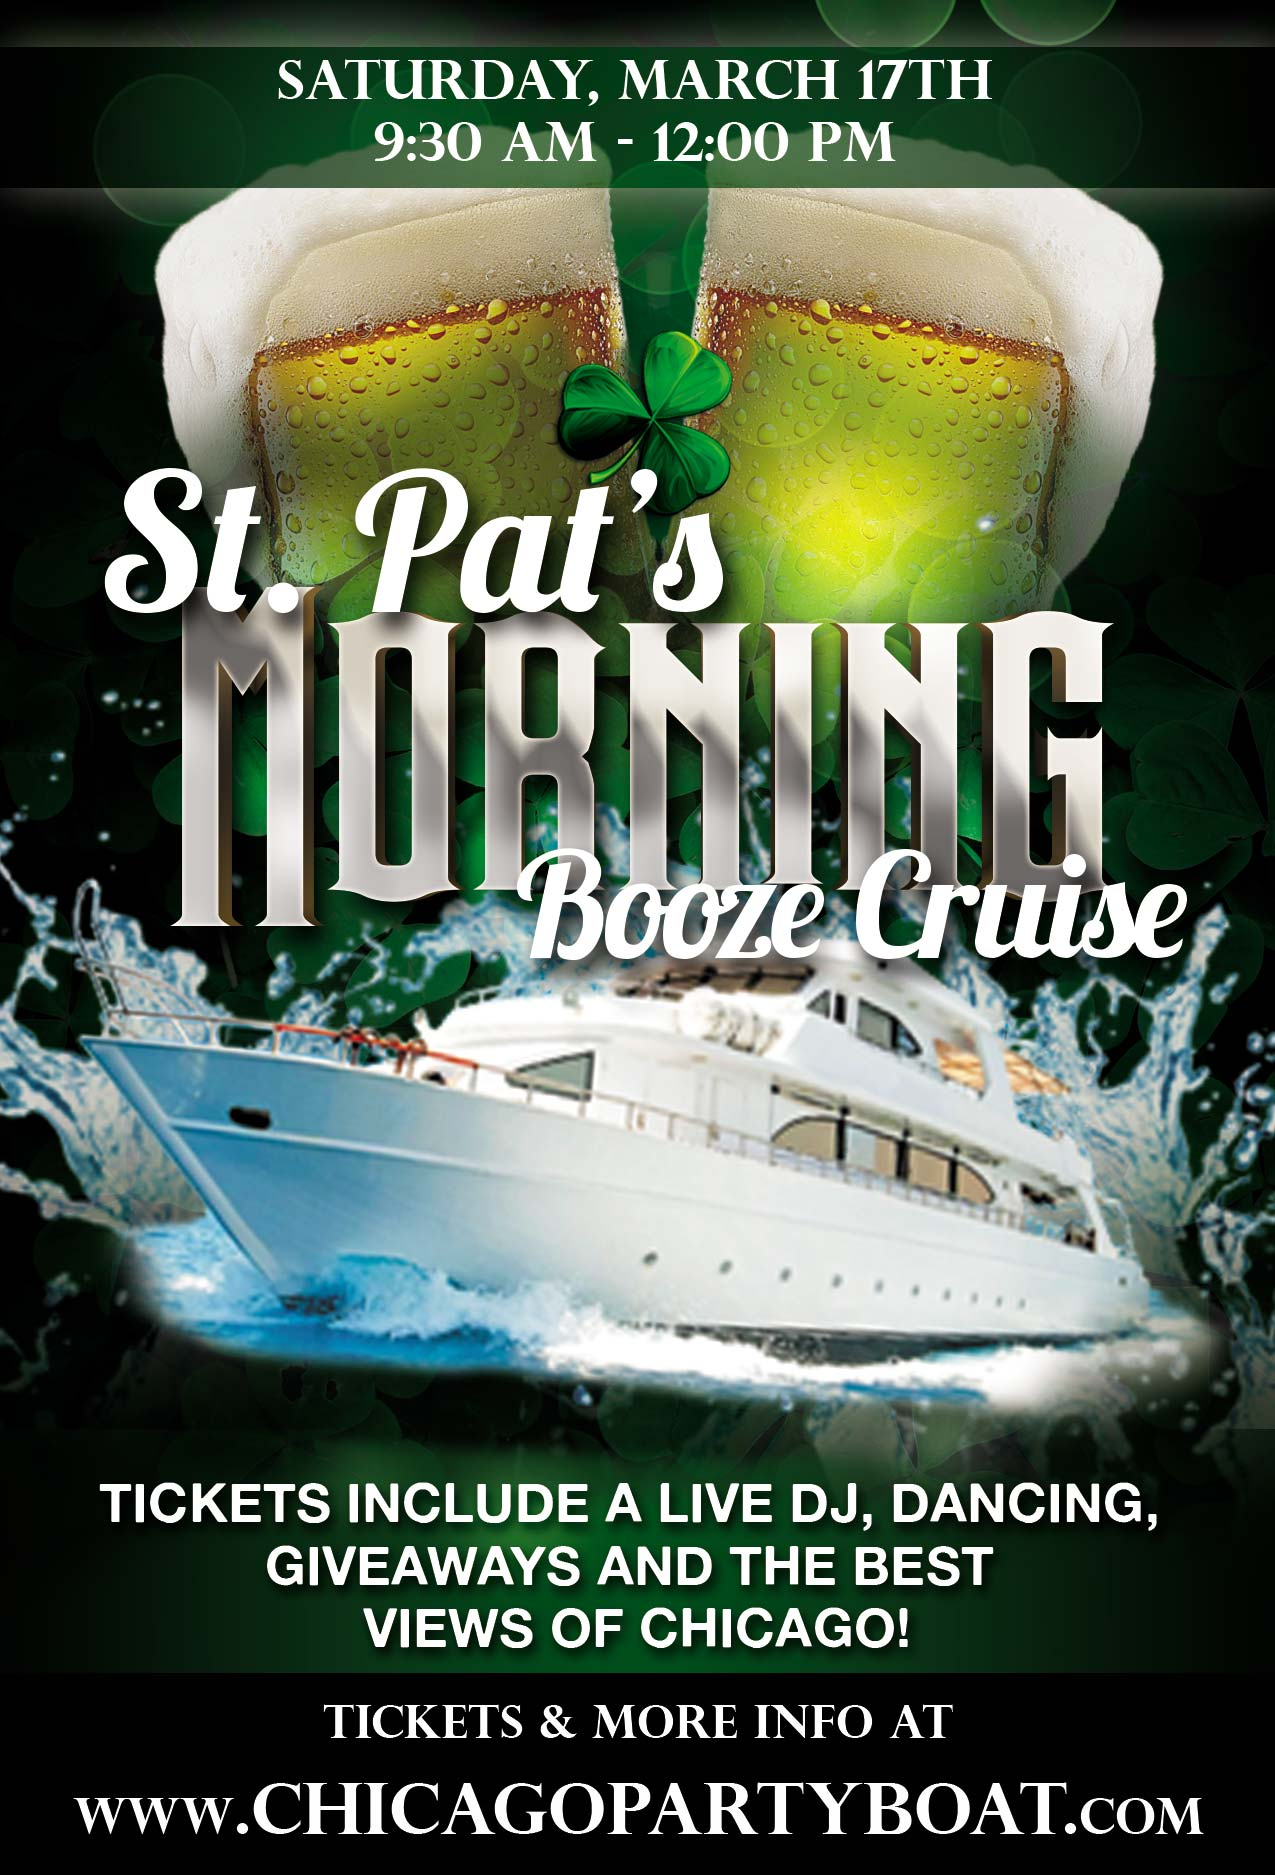 St. Patrick's Day Morning Booze Cruise Party - Tickets include a Live DJ, Dancing, Giveaways, and the best views of Chicago!